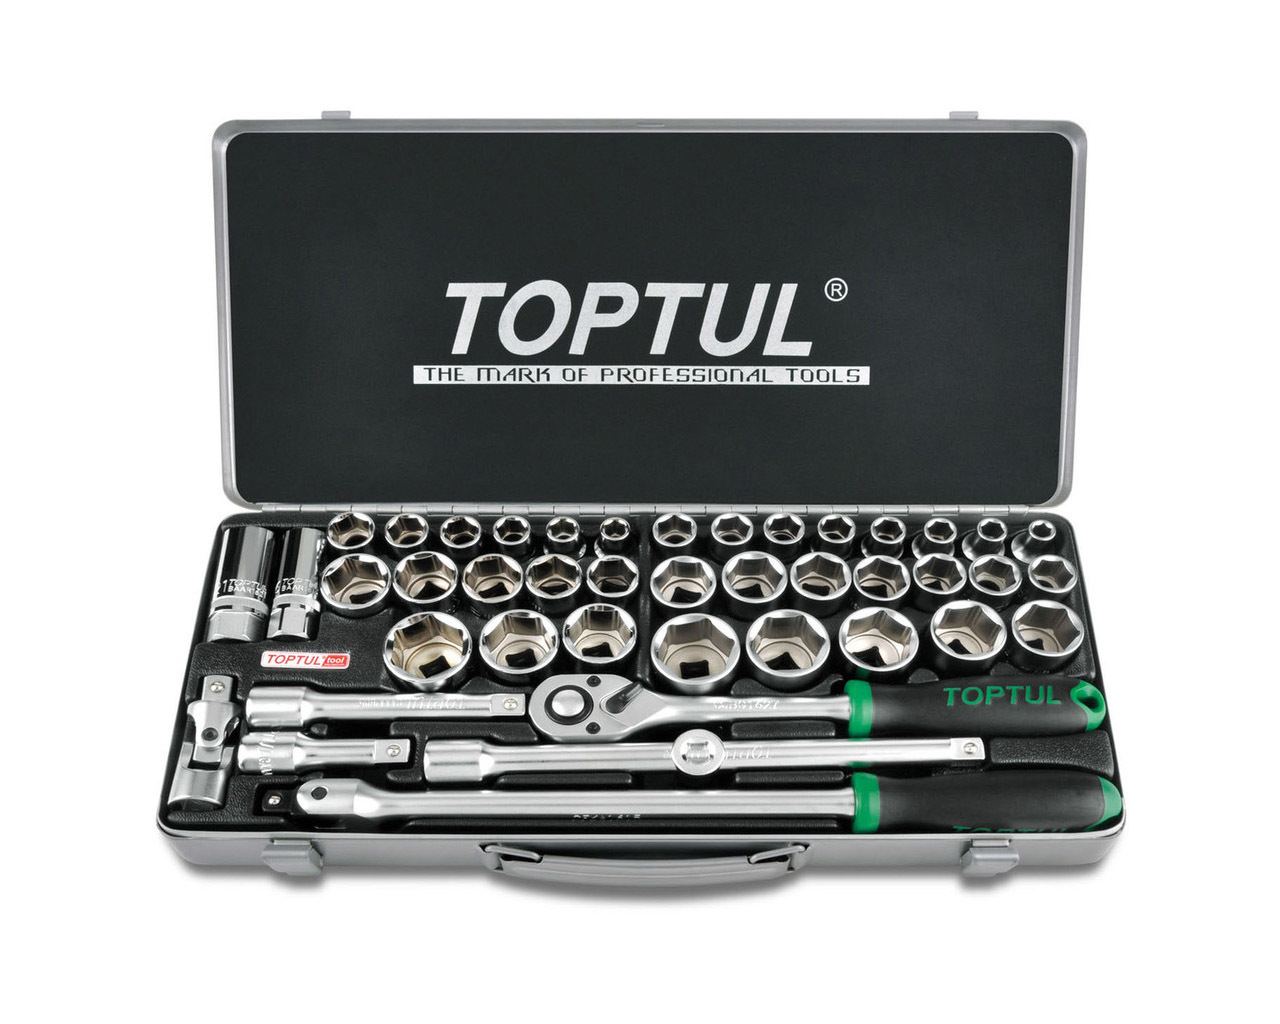 audel%20power%20tools%20toptul%20gcad430